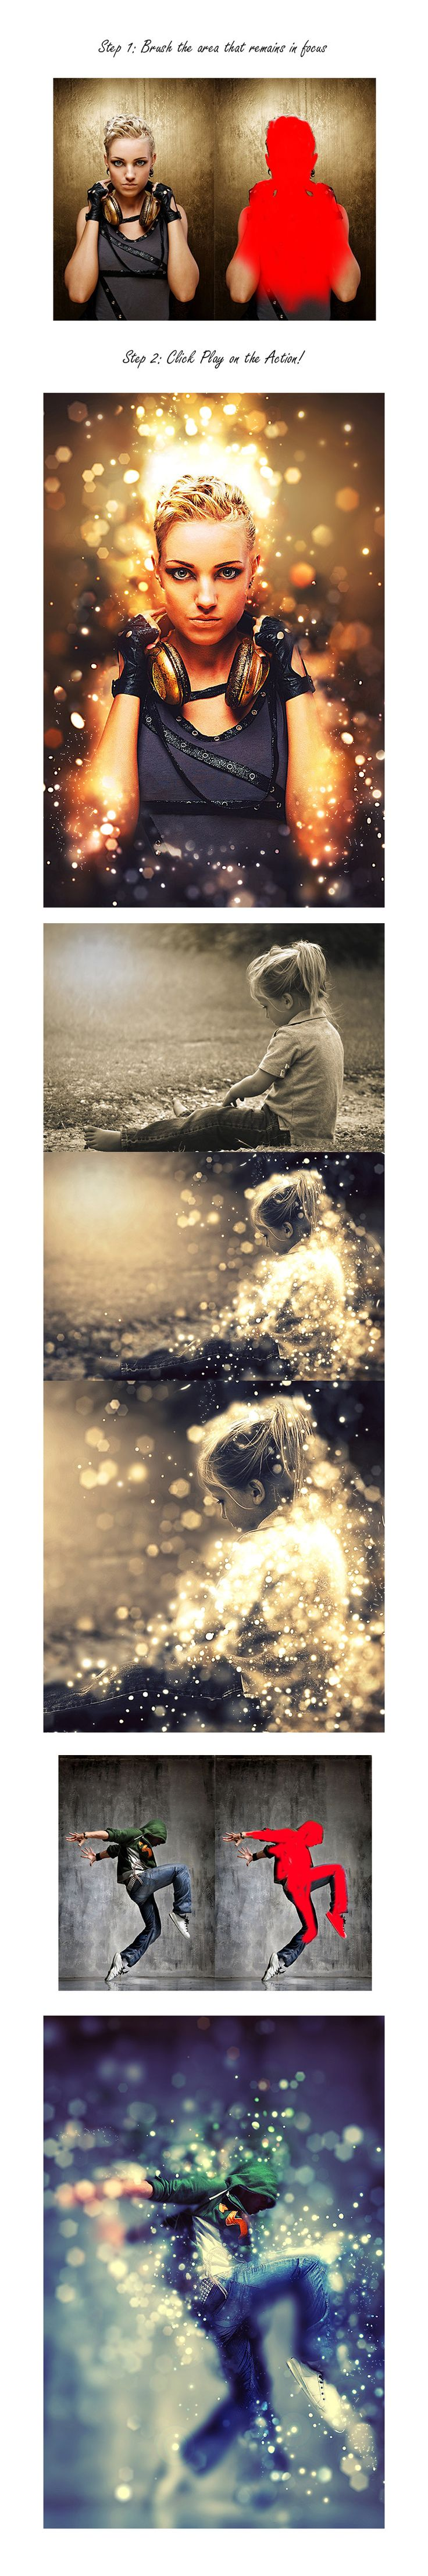 Photoshop Actions That Transforms Any Image into a Piece of Art